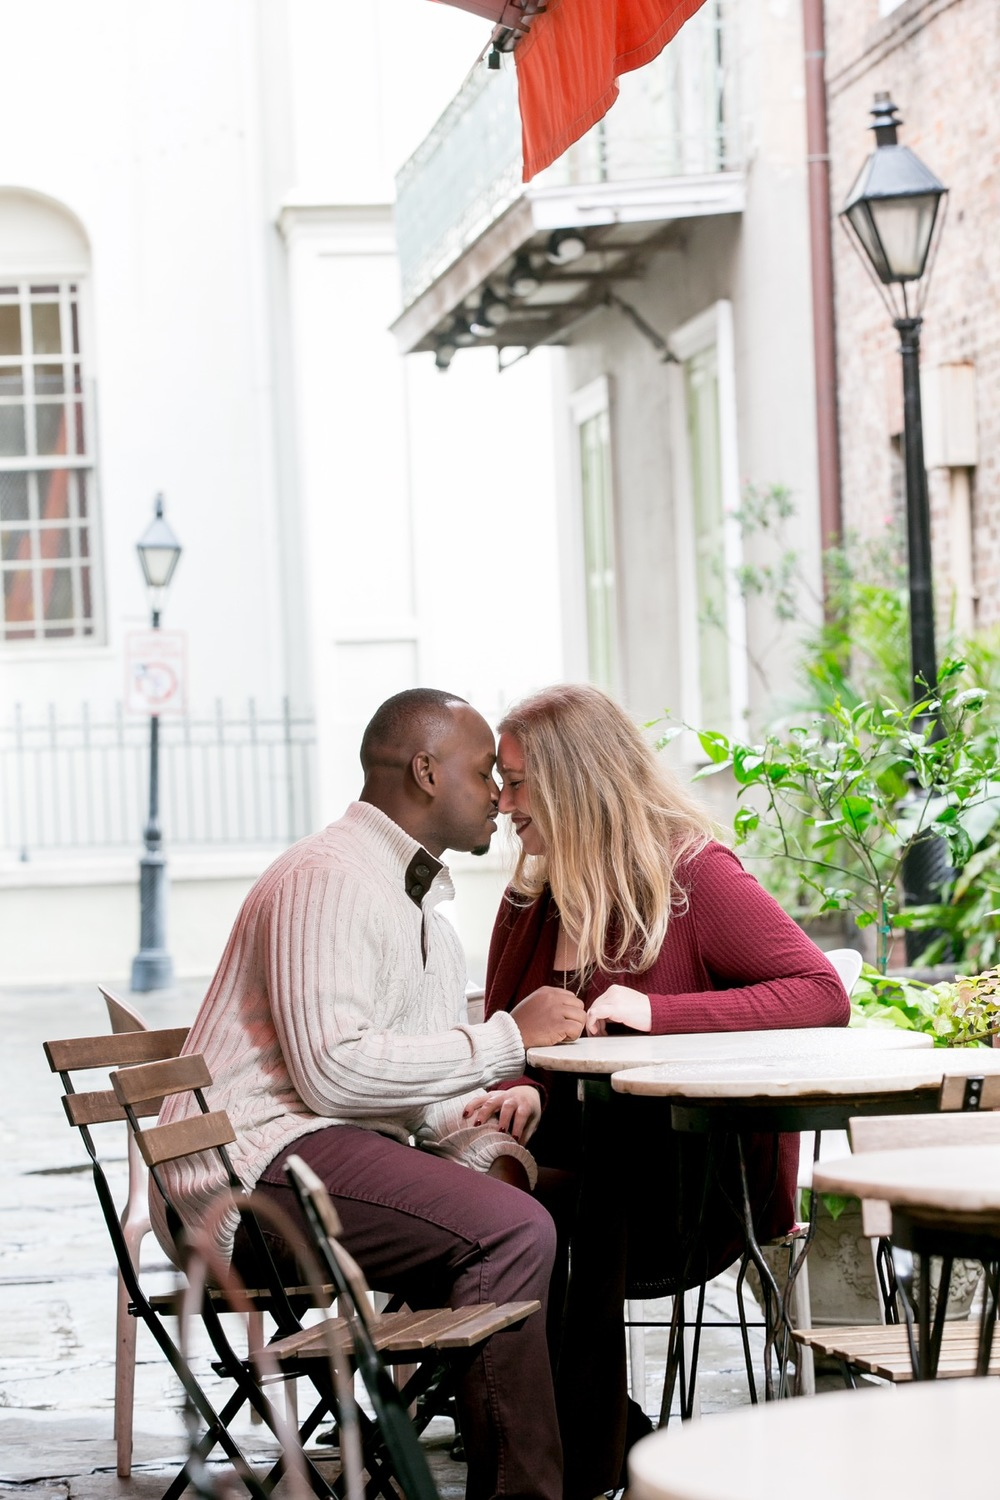 Couples Vacation to New Orleans | New Orleans Vacation Photographer Flytographer